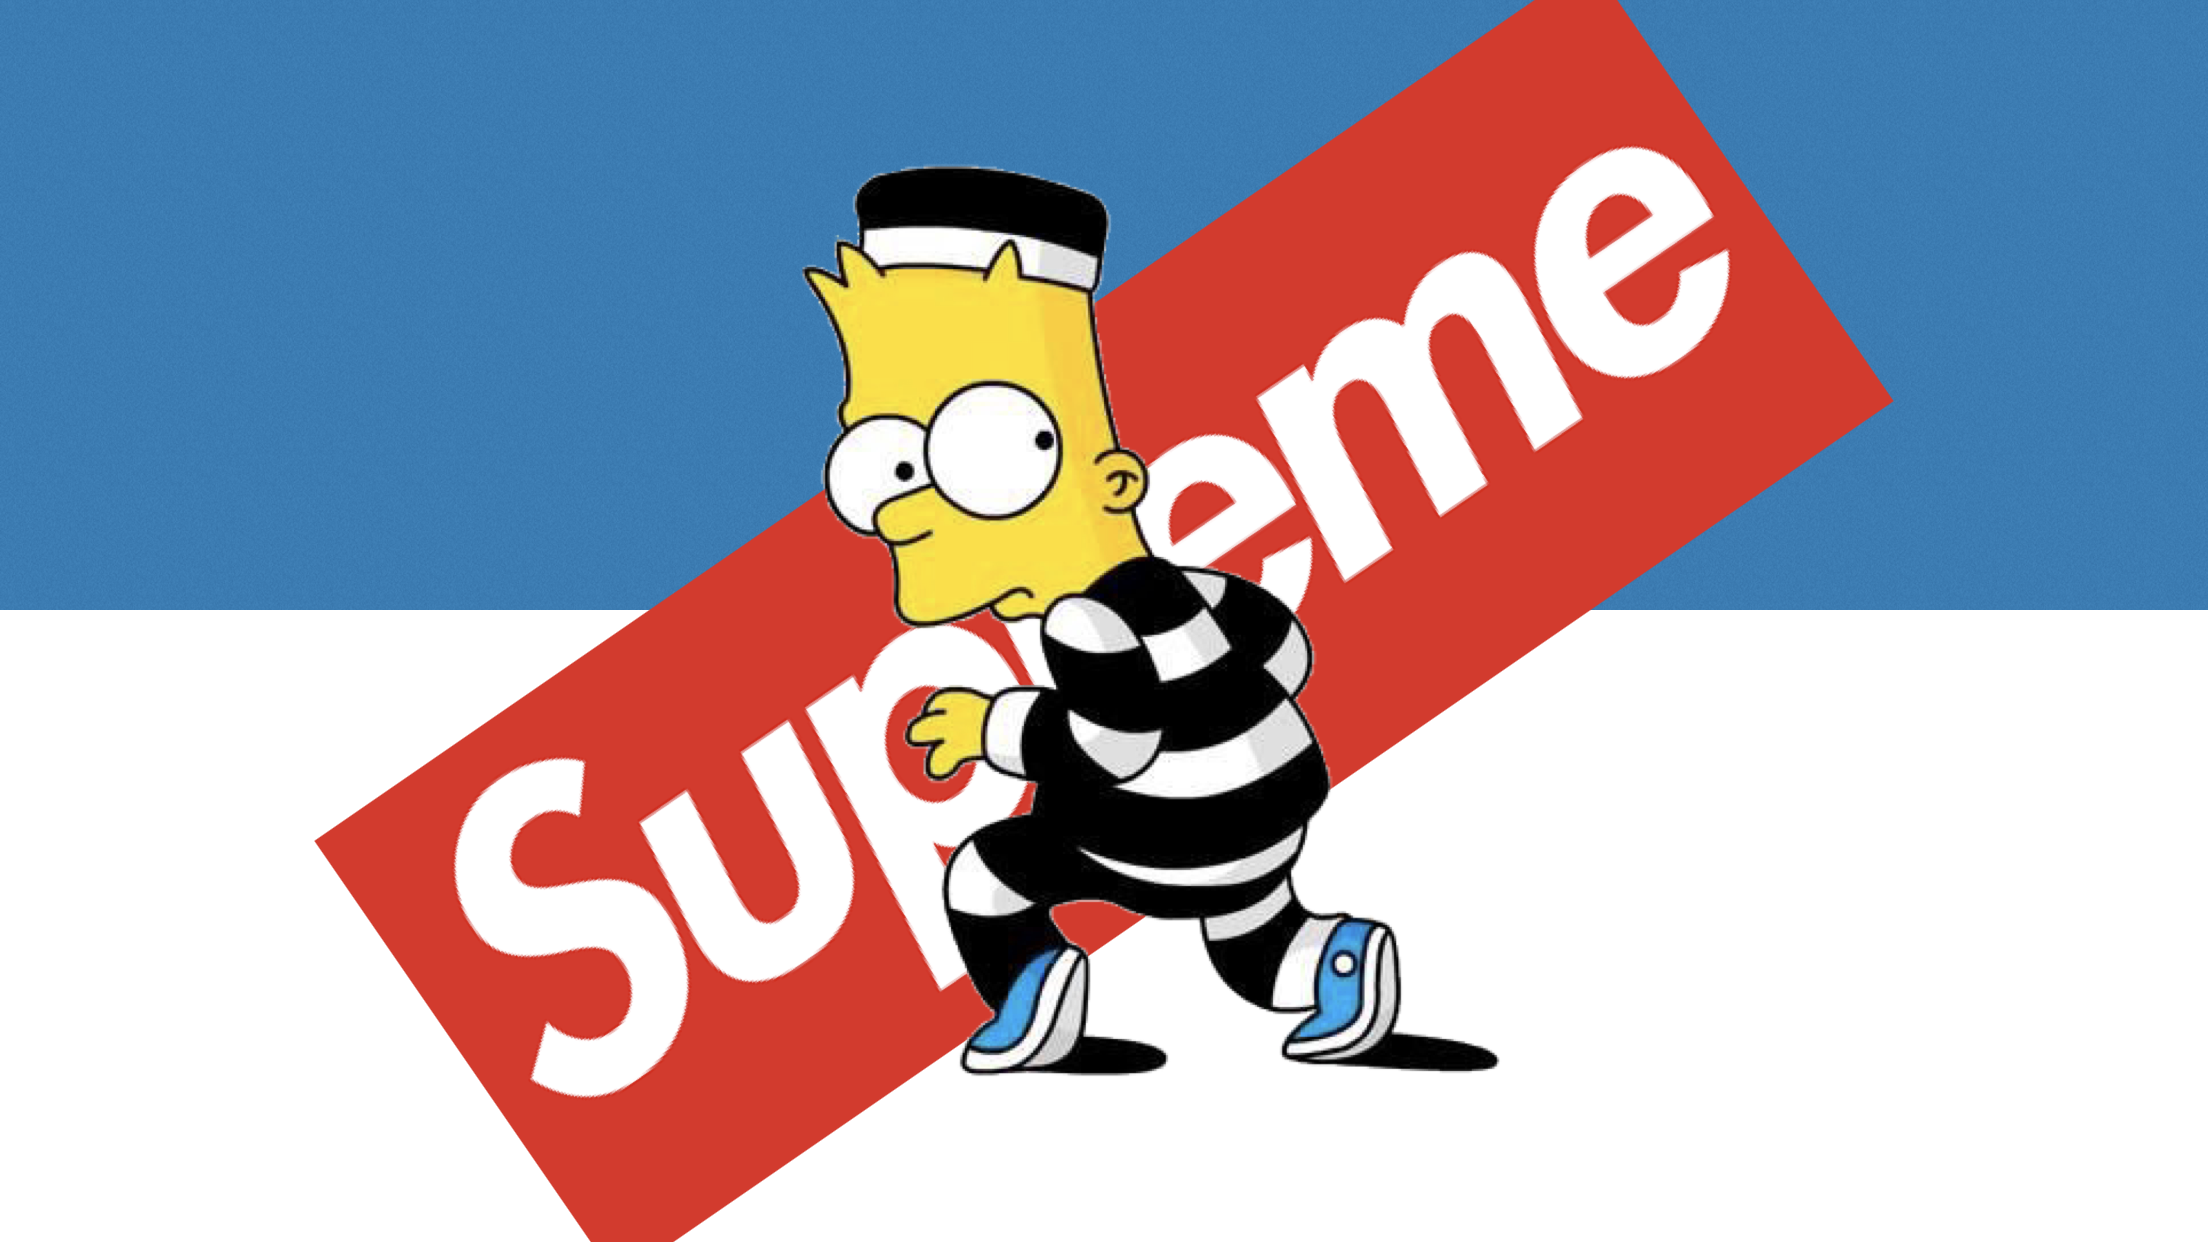 Bart Supreme Hd Wallpaper Laptop In 2019 Supreme Wallpaper